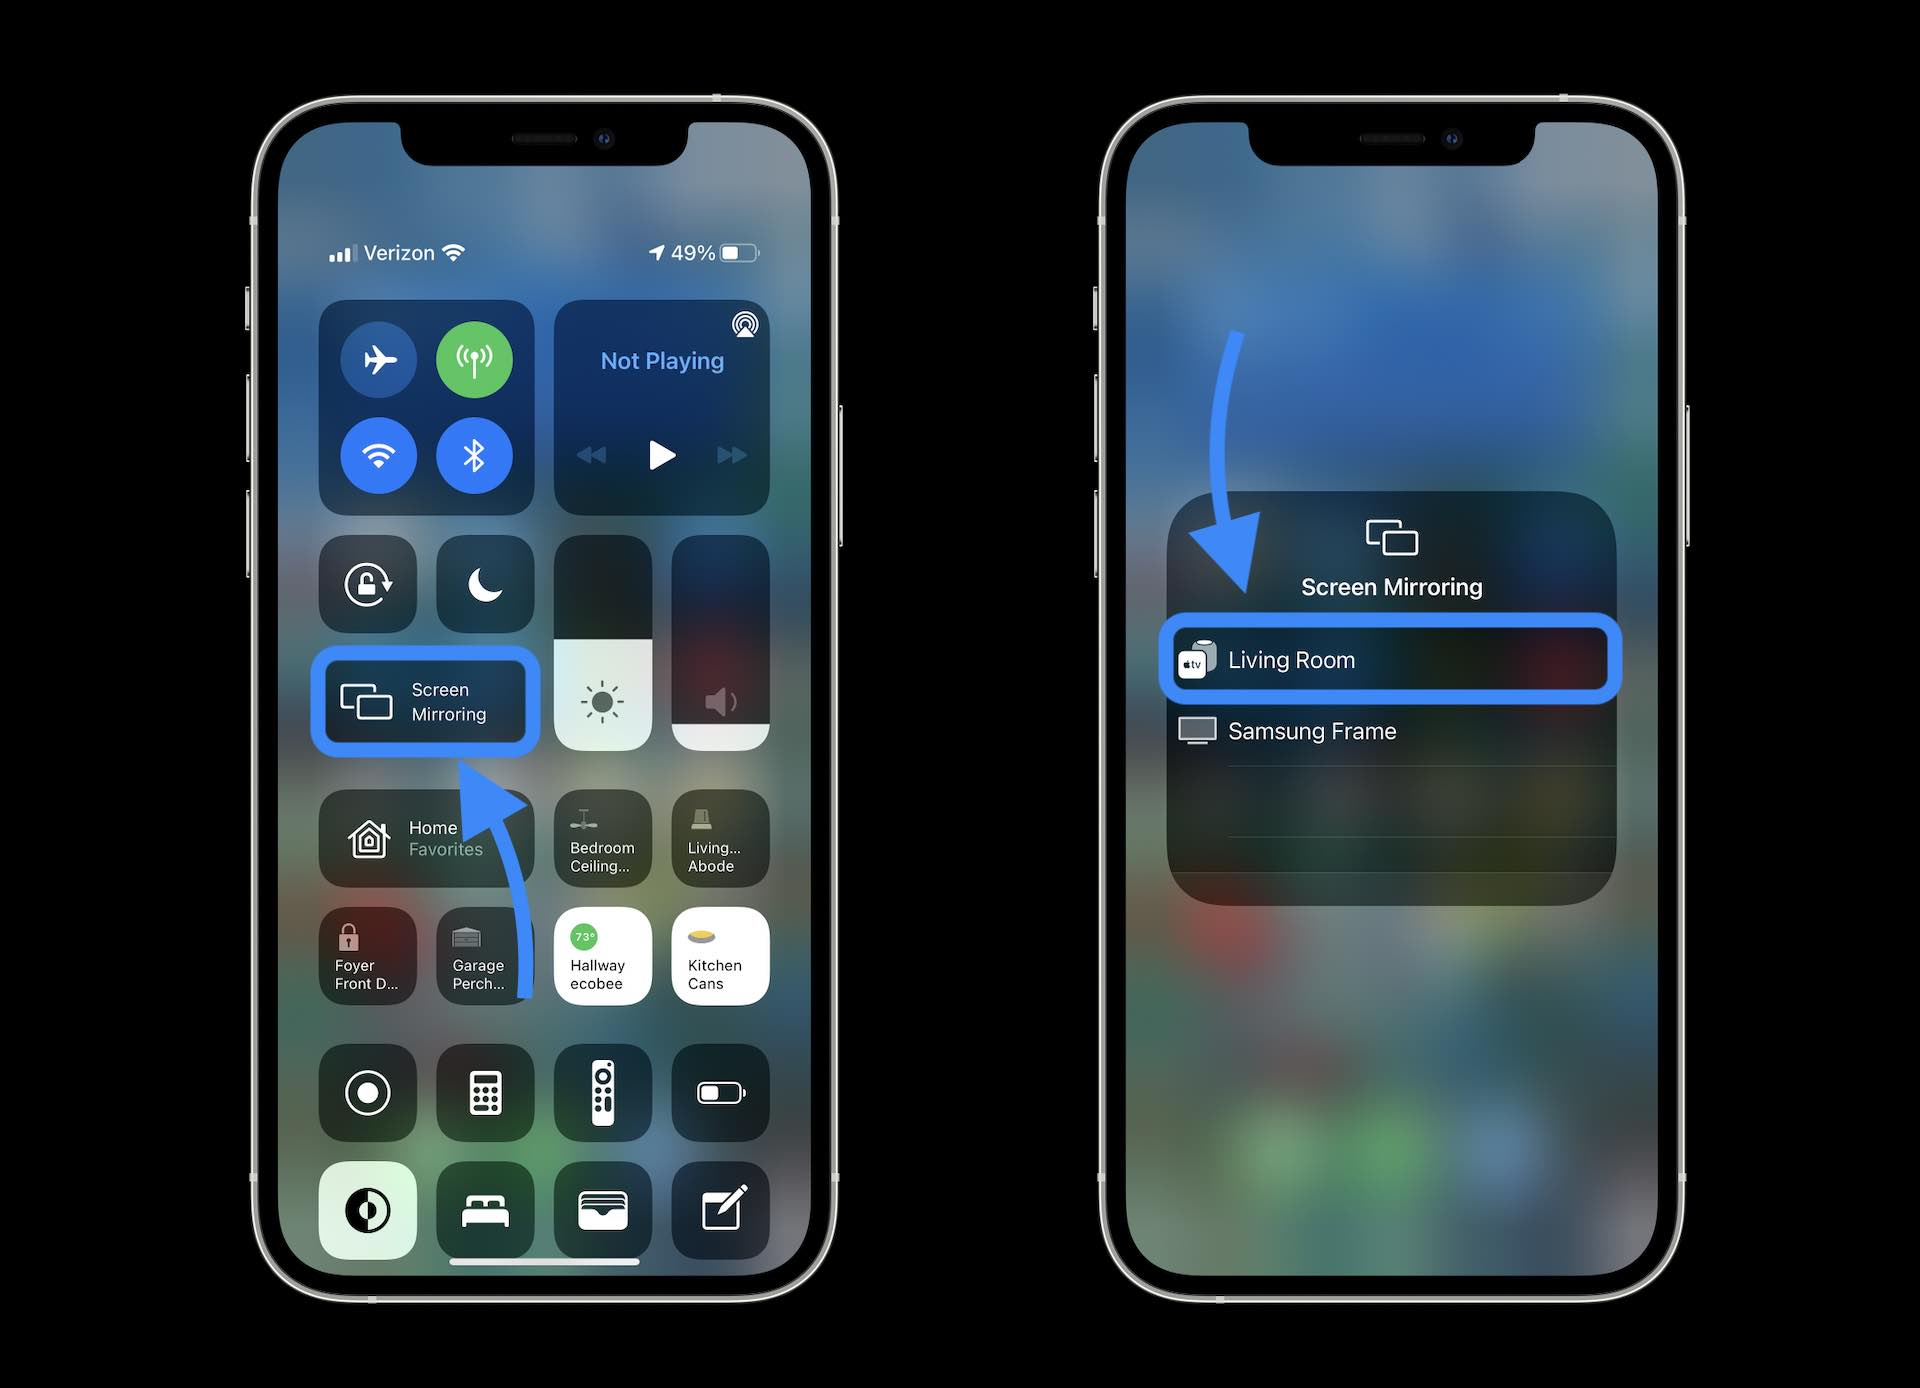 How to watch Dolby Vision iPhone videos on Apple TV - opening Control Center and choosing Screen Mirroring